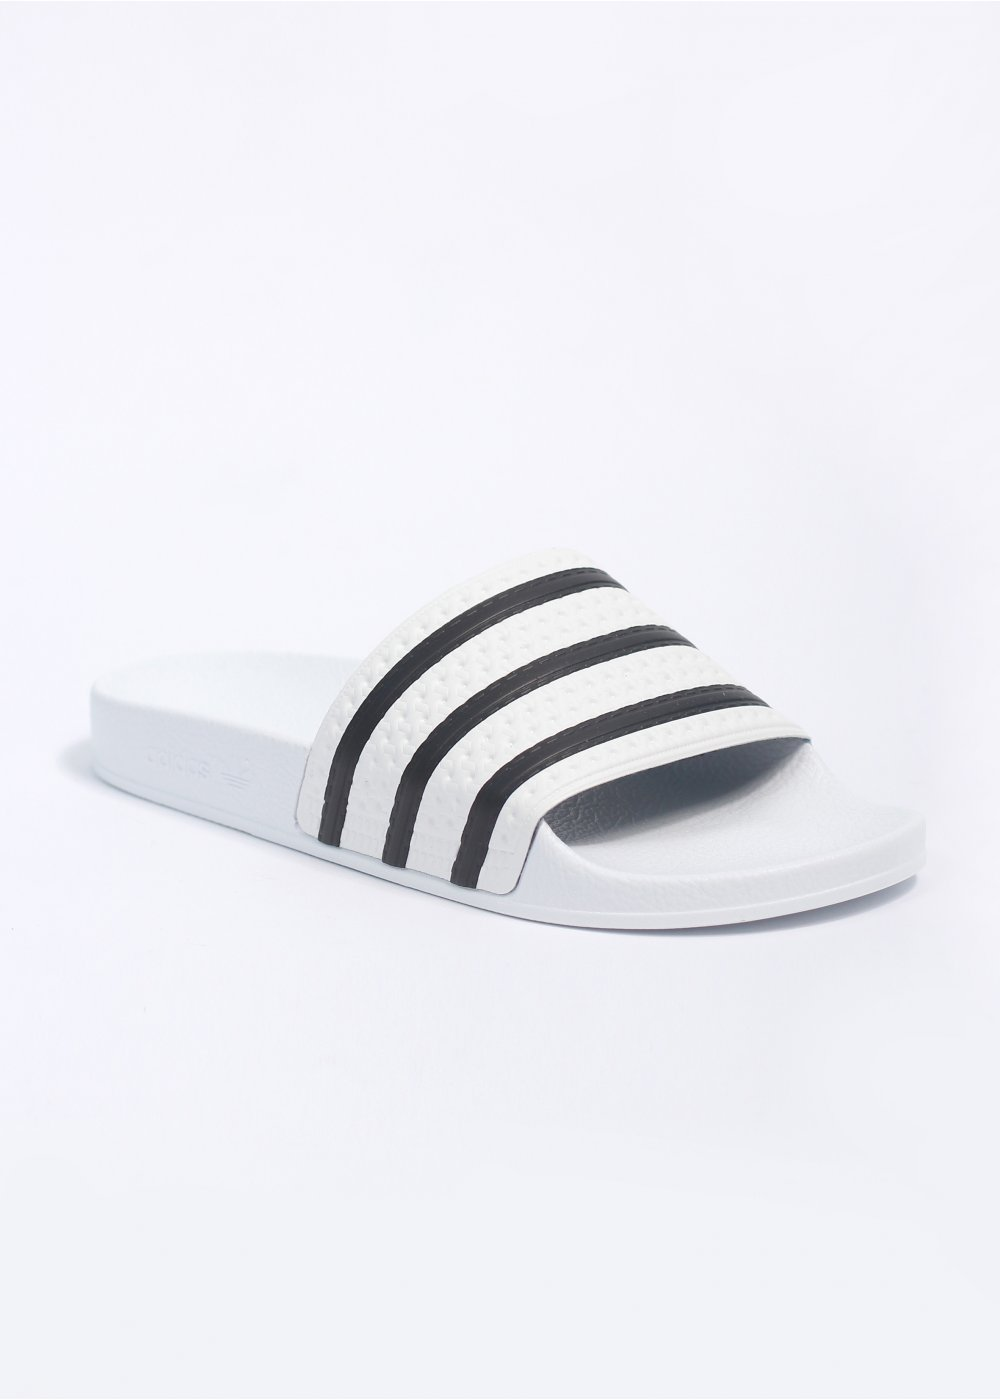 Adidas Originals Adilette Flip Flop Sandals White Black